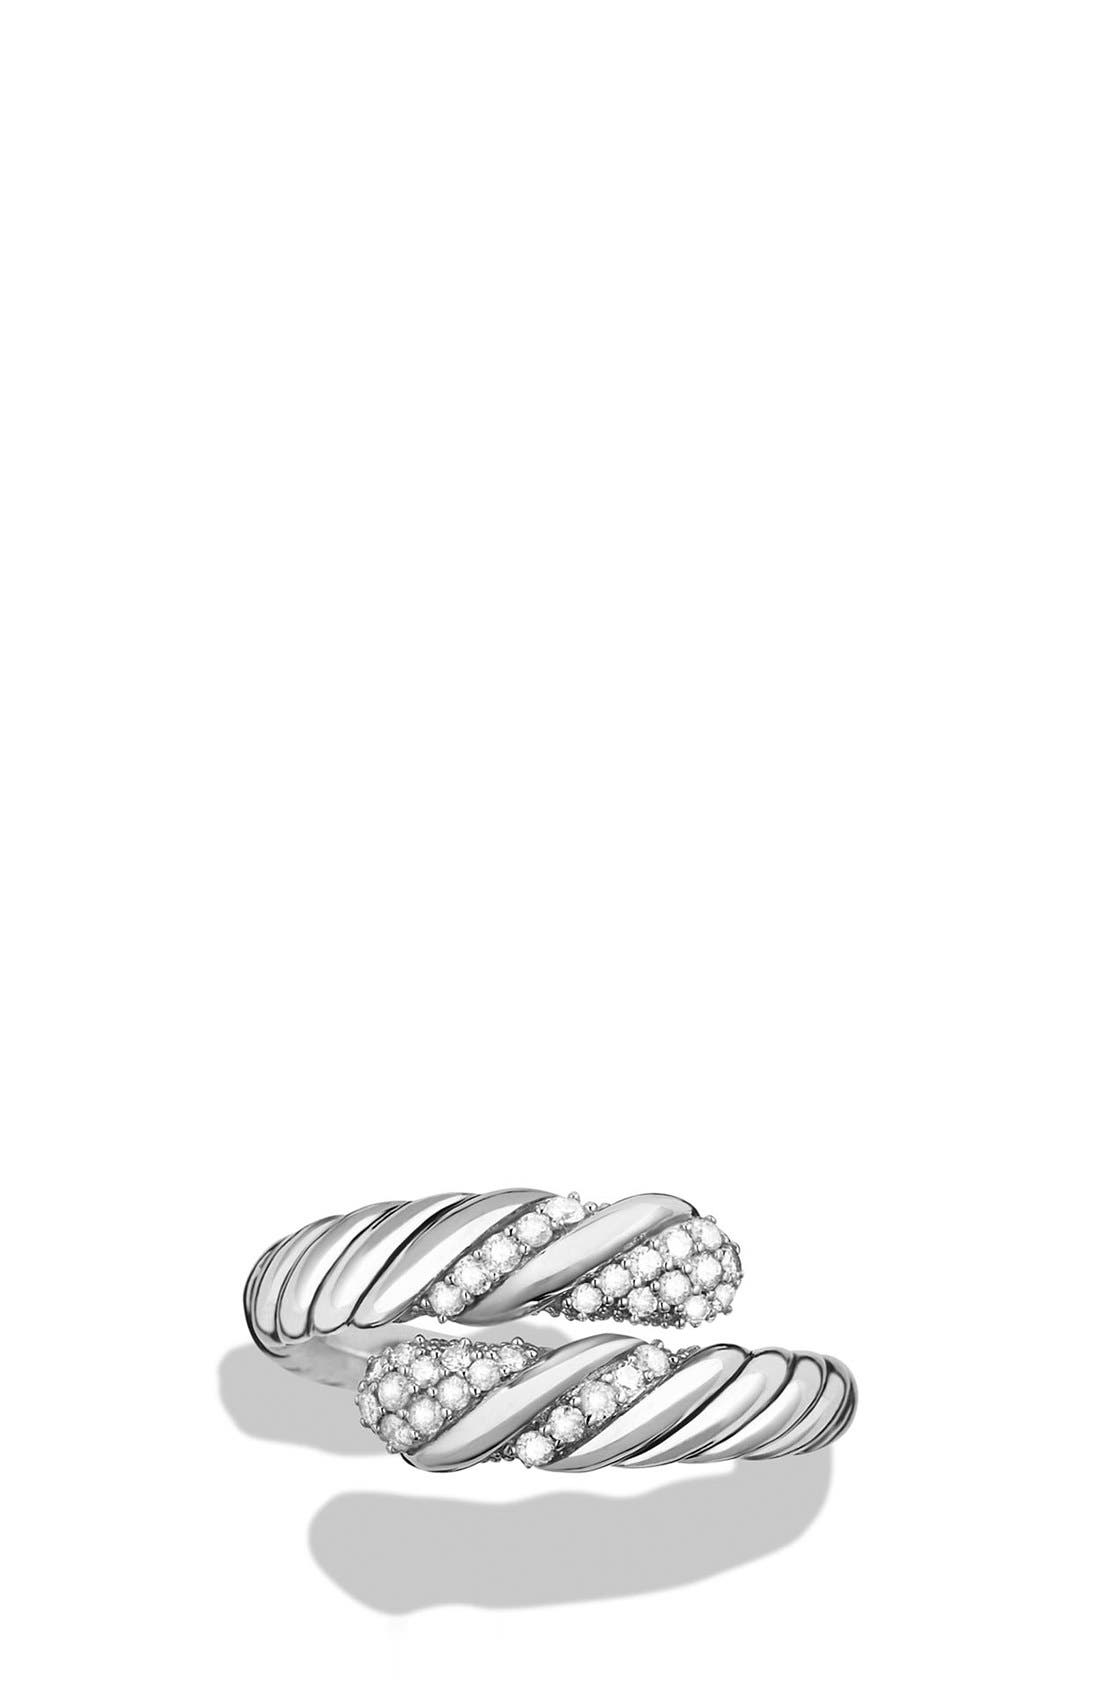 'Willow' Open Single Row Ring with Diamonds,                             Alternate thumbnail 3, color,                             040